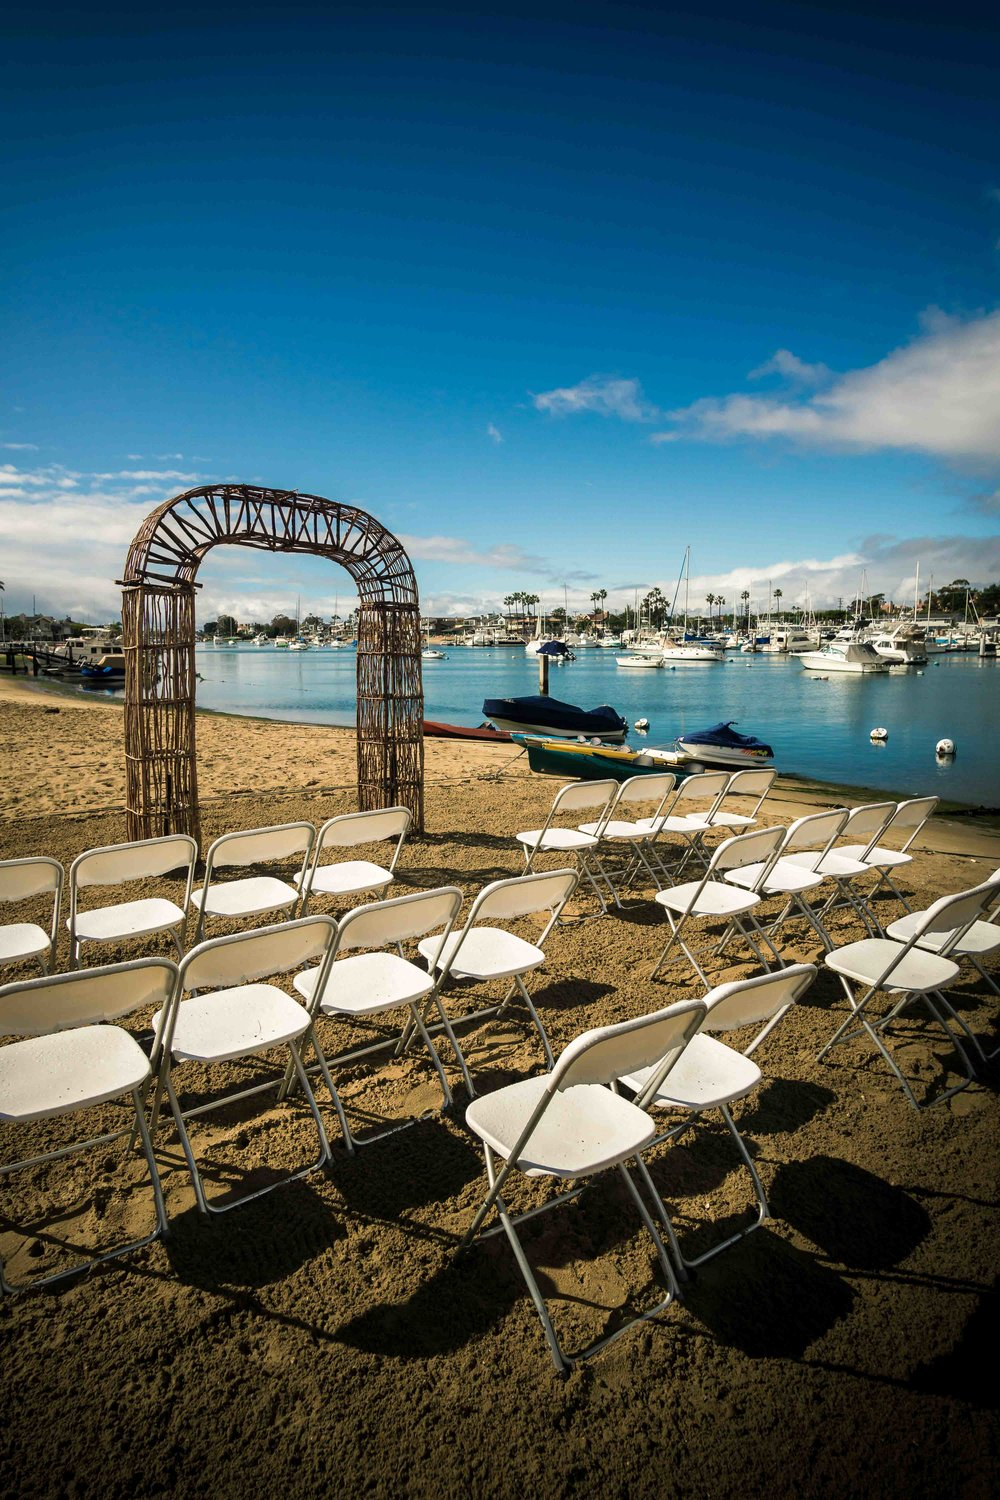 The wedding ceremony before the guests arrive on the beach on diamond street on Balboa Island Newport Beach